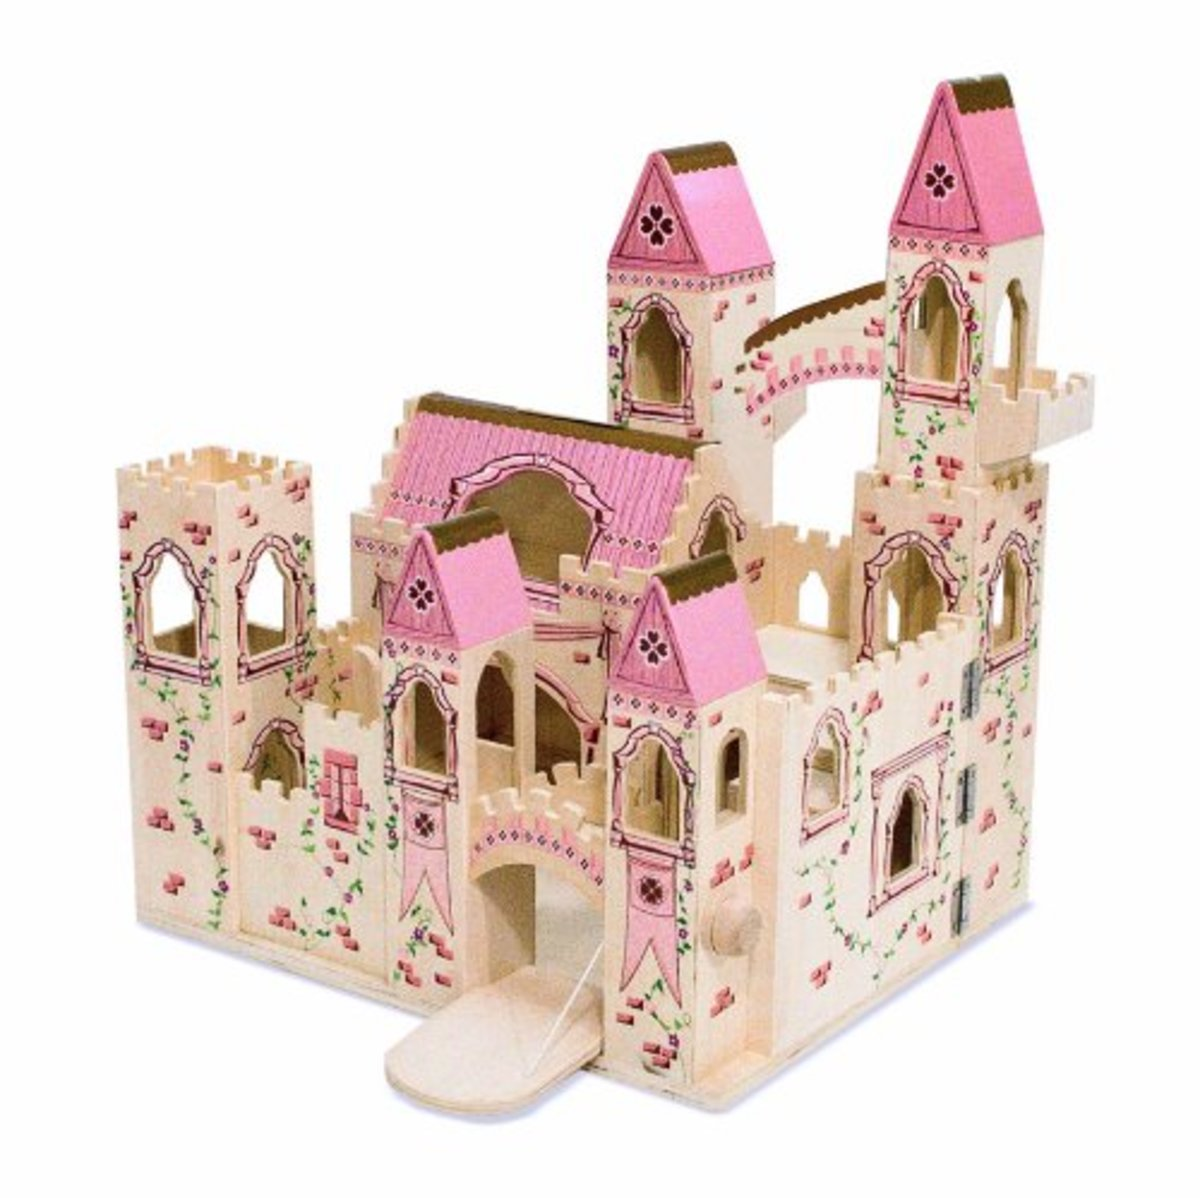 Toy Castles For Boys : Toy castles forts for children kids wooden